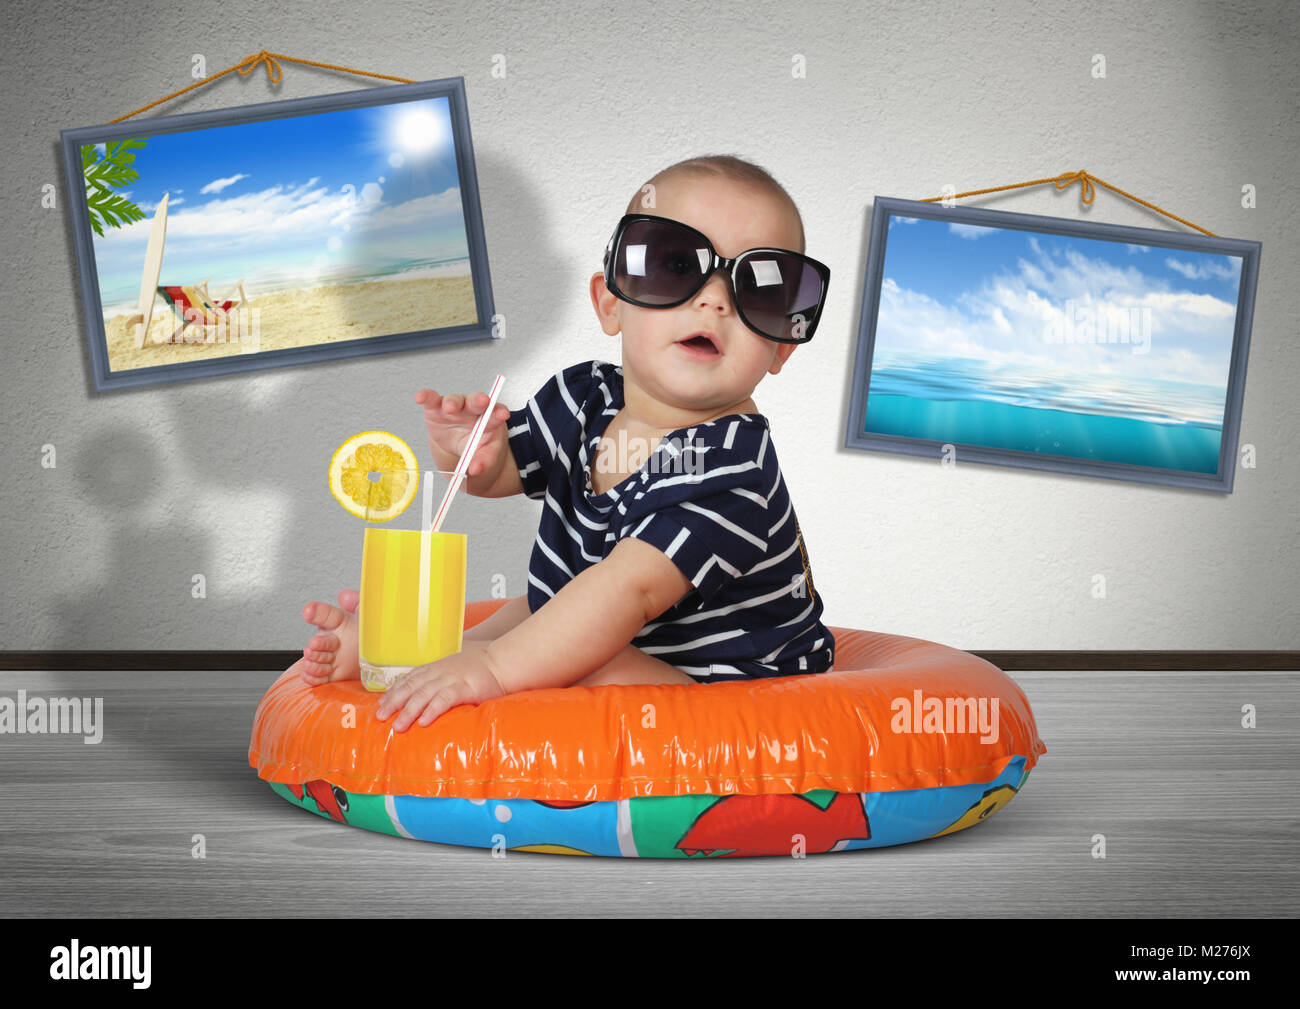 Funny Child Rest On Swimming Ring At Home As On The Beach Vacation Stock Photo Alamy